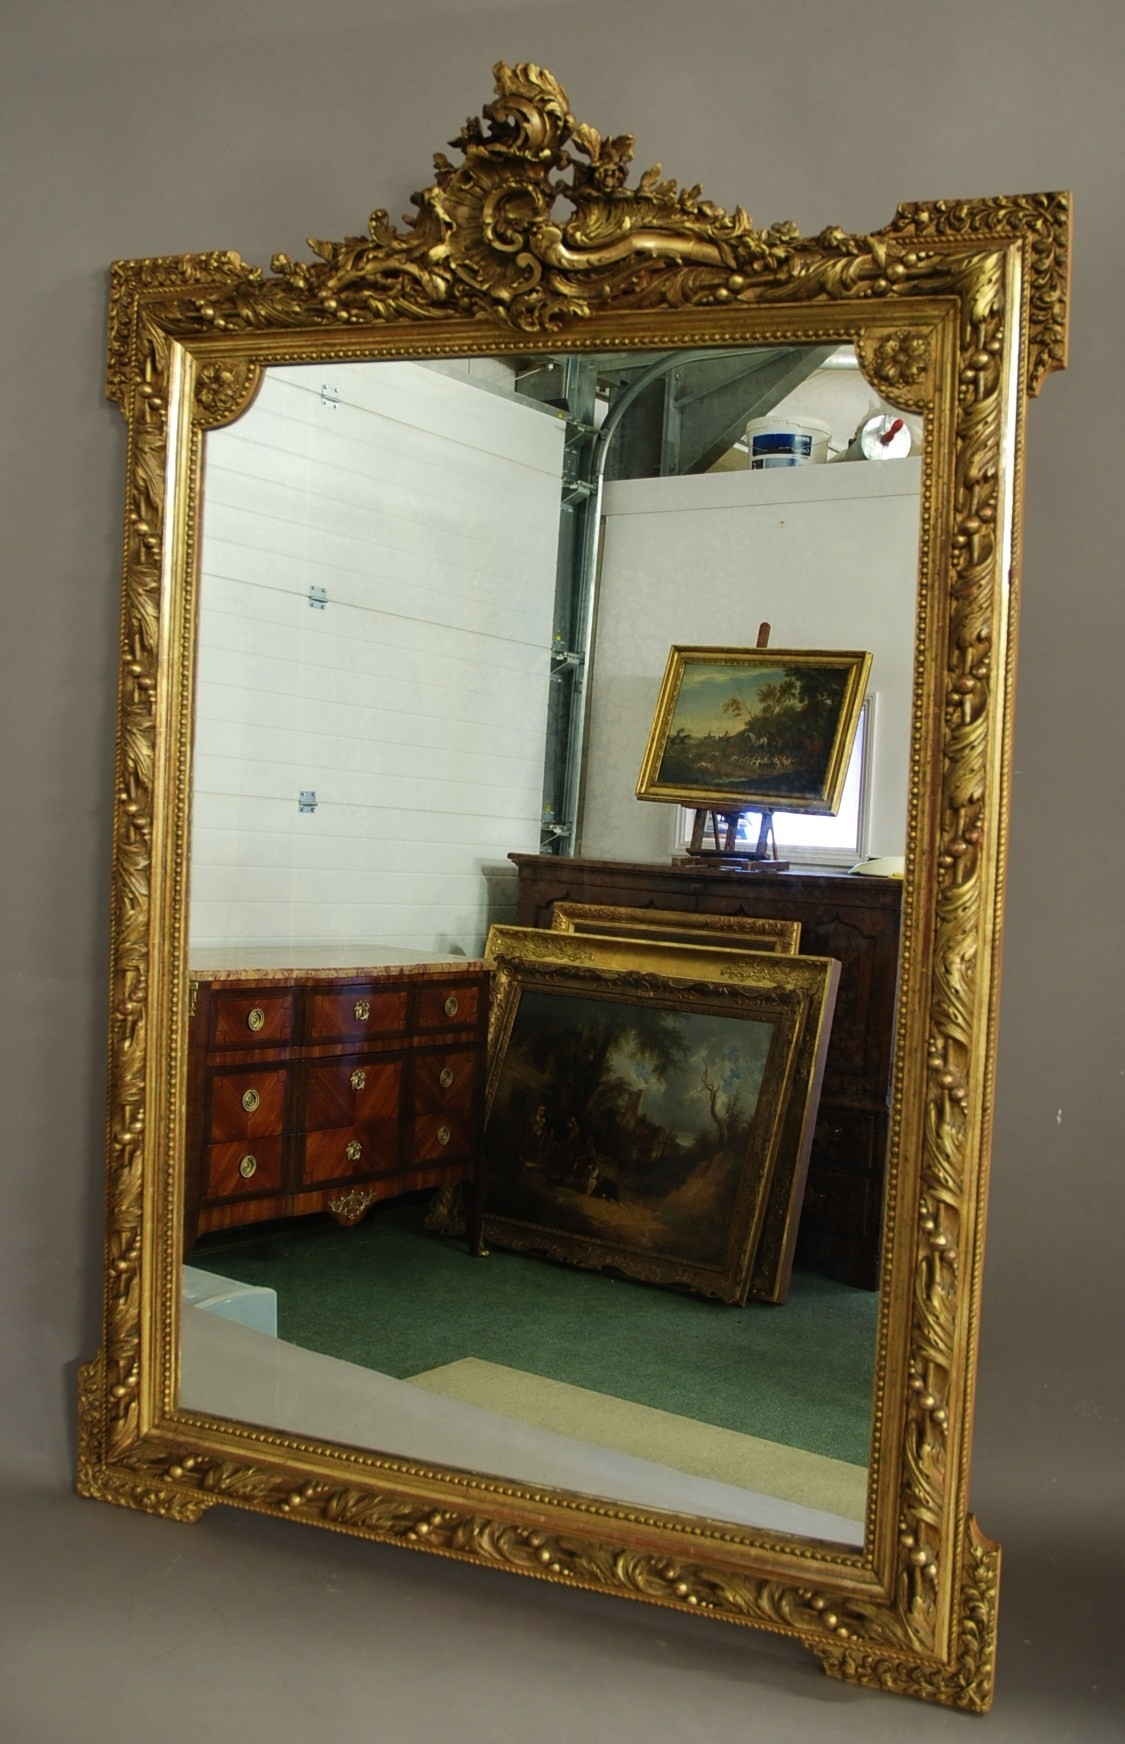 Large 19th Century Ornate French Gilt Mirror 1880 France From Regarding Ornate Gilt Mirrors (Image 6 of 15)